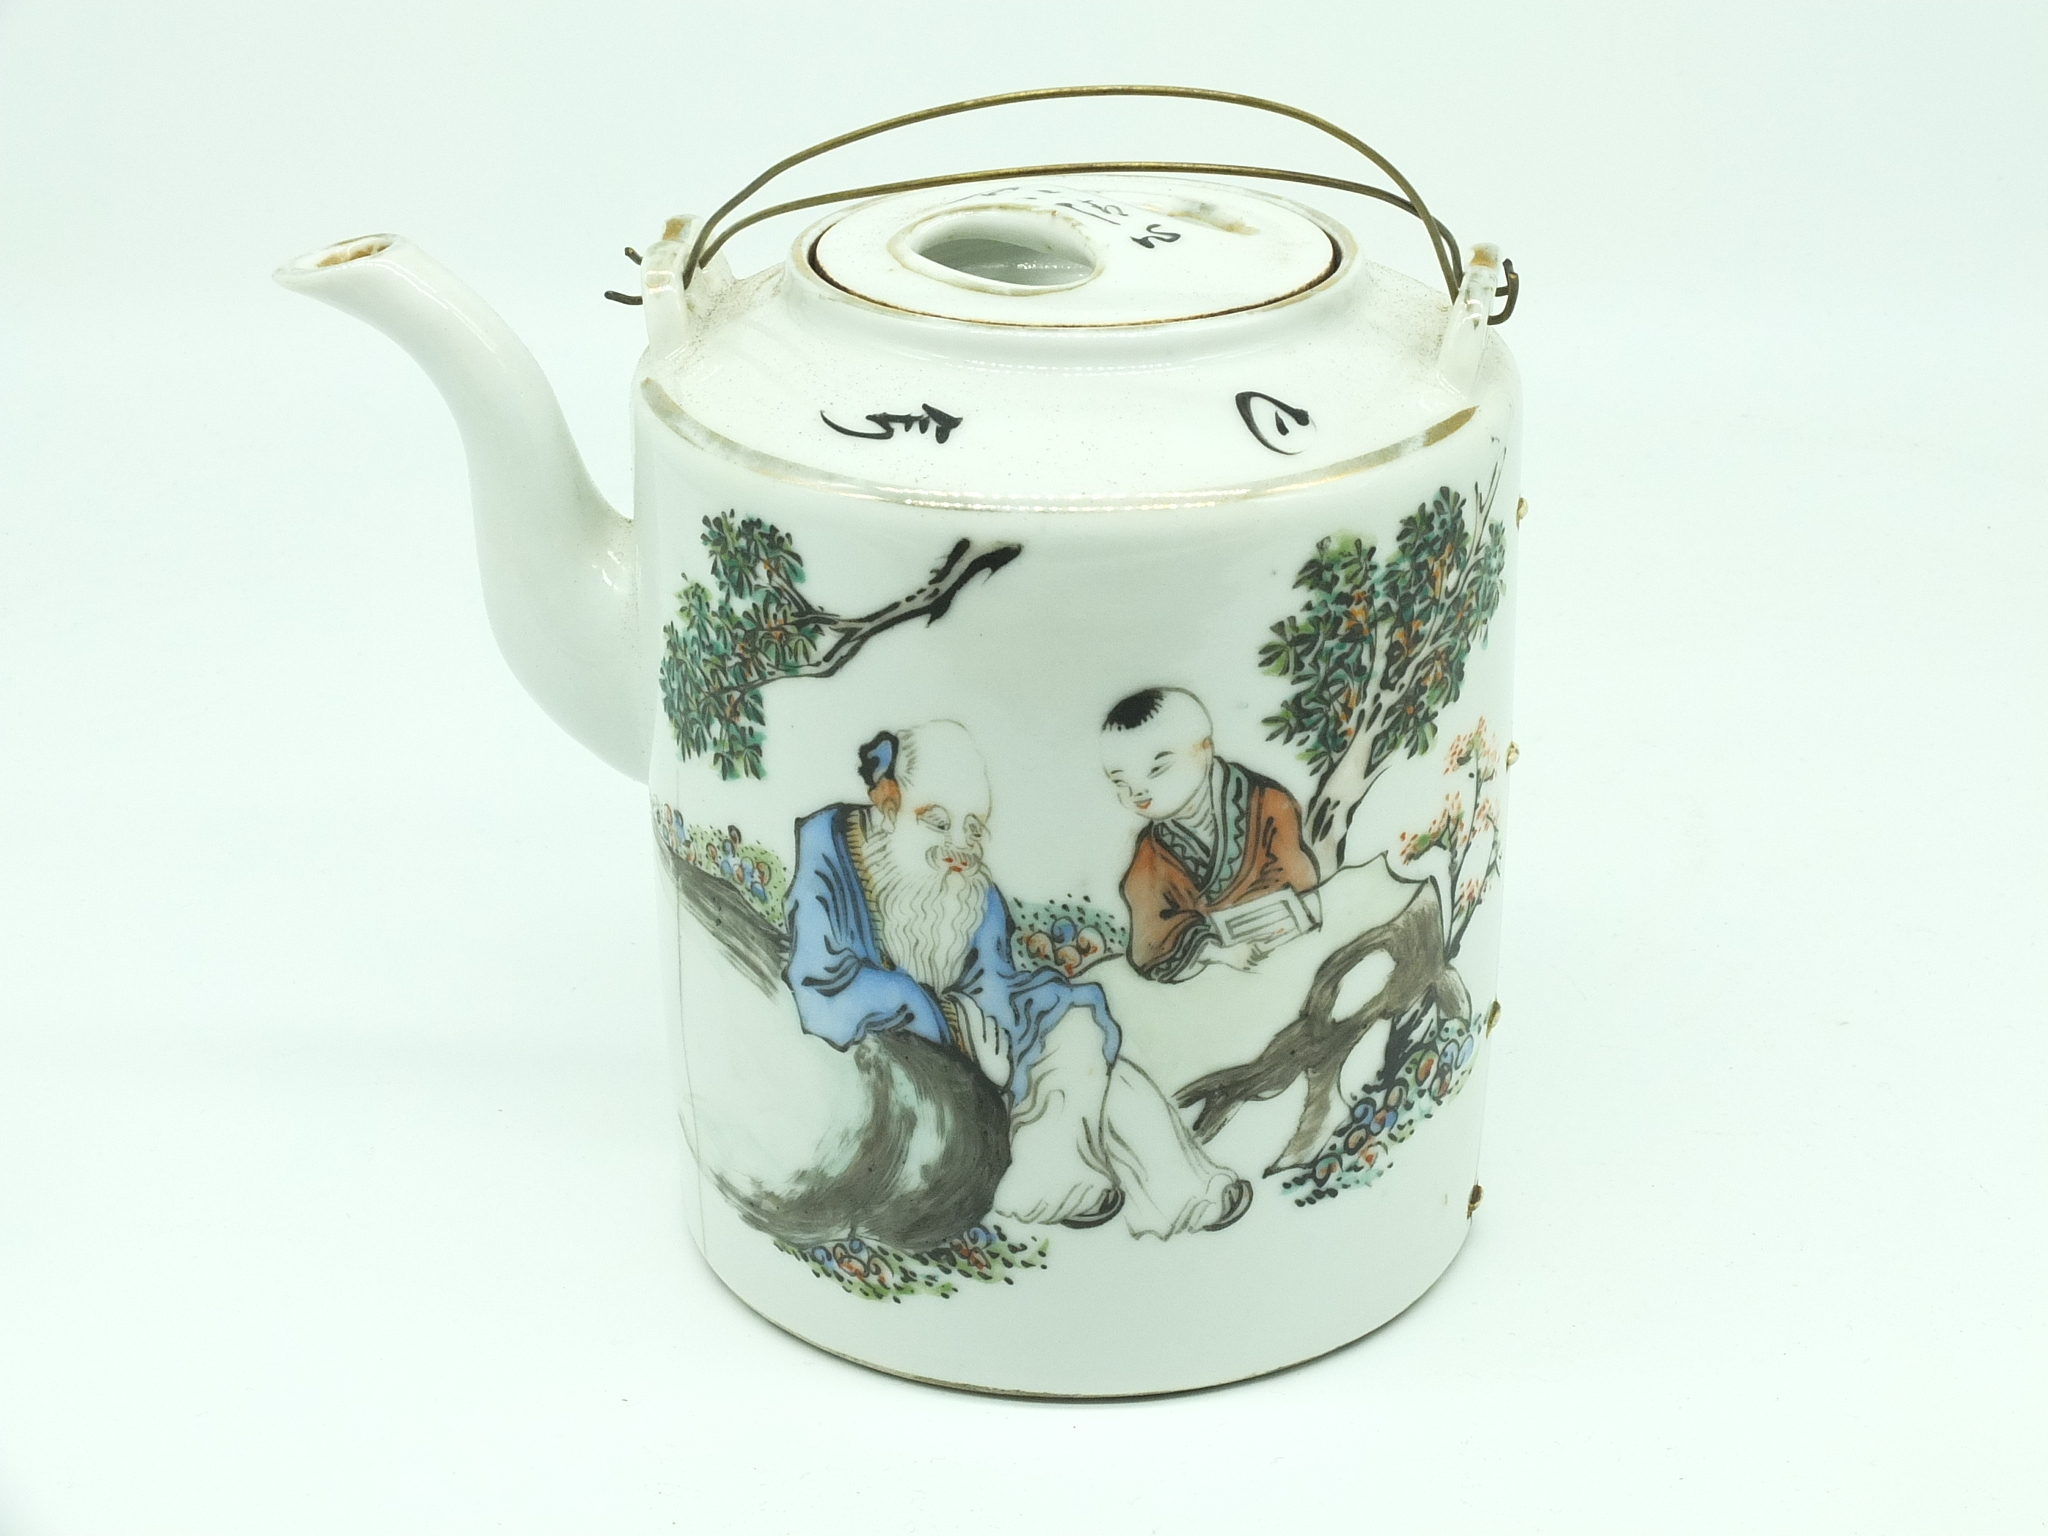 'Chinese Export Famille Rose Porcelain Teapot Early 20th Century'